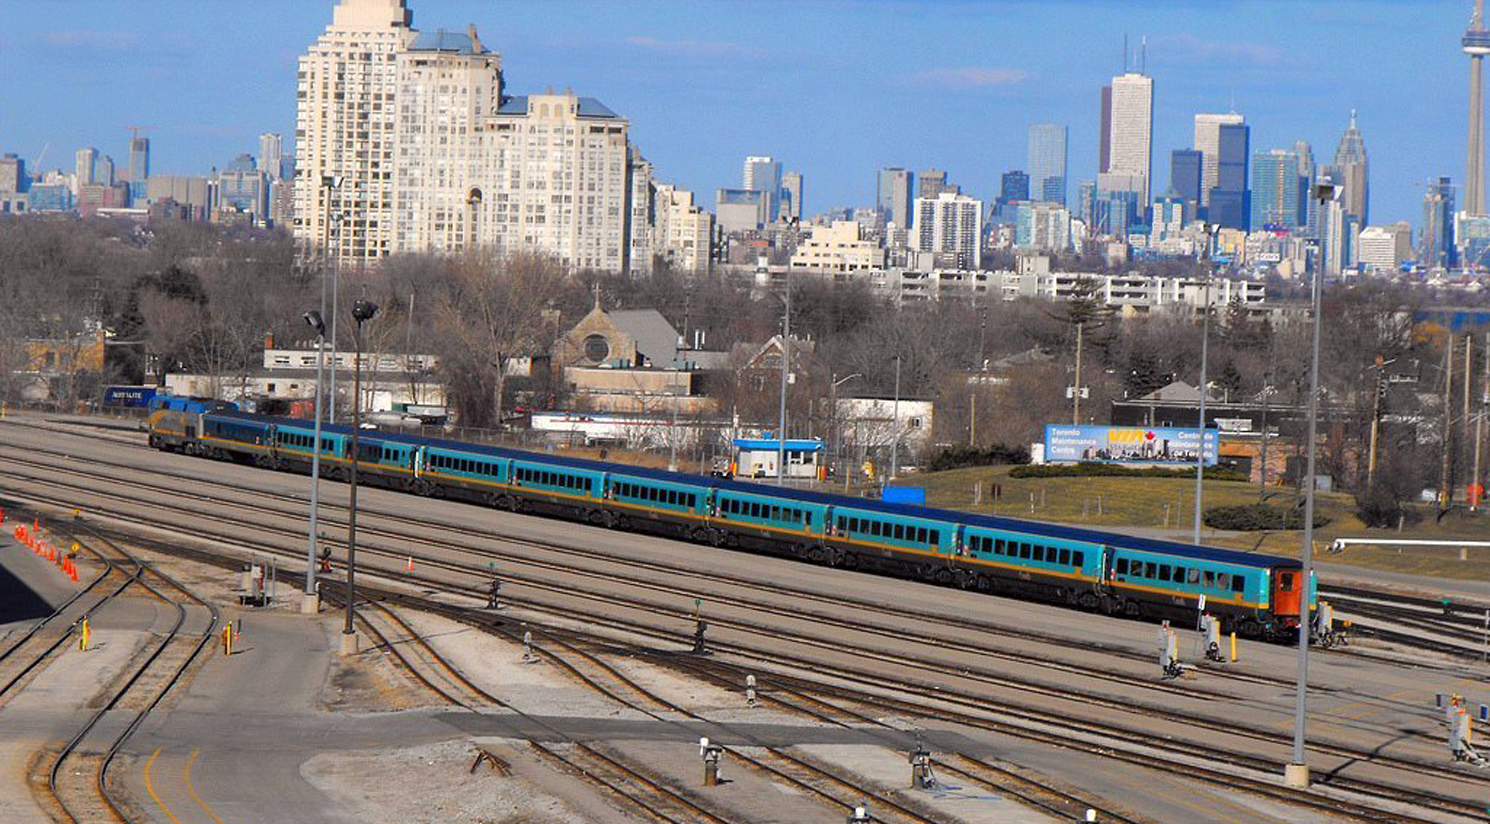 17-420_via_rail_renaissance_in_toronto_1490x824.jpg